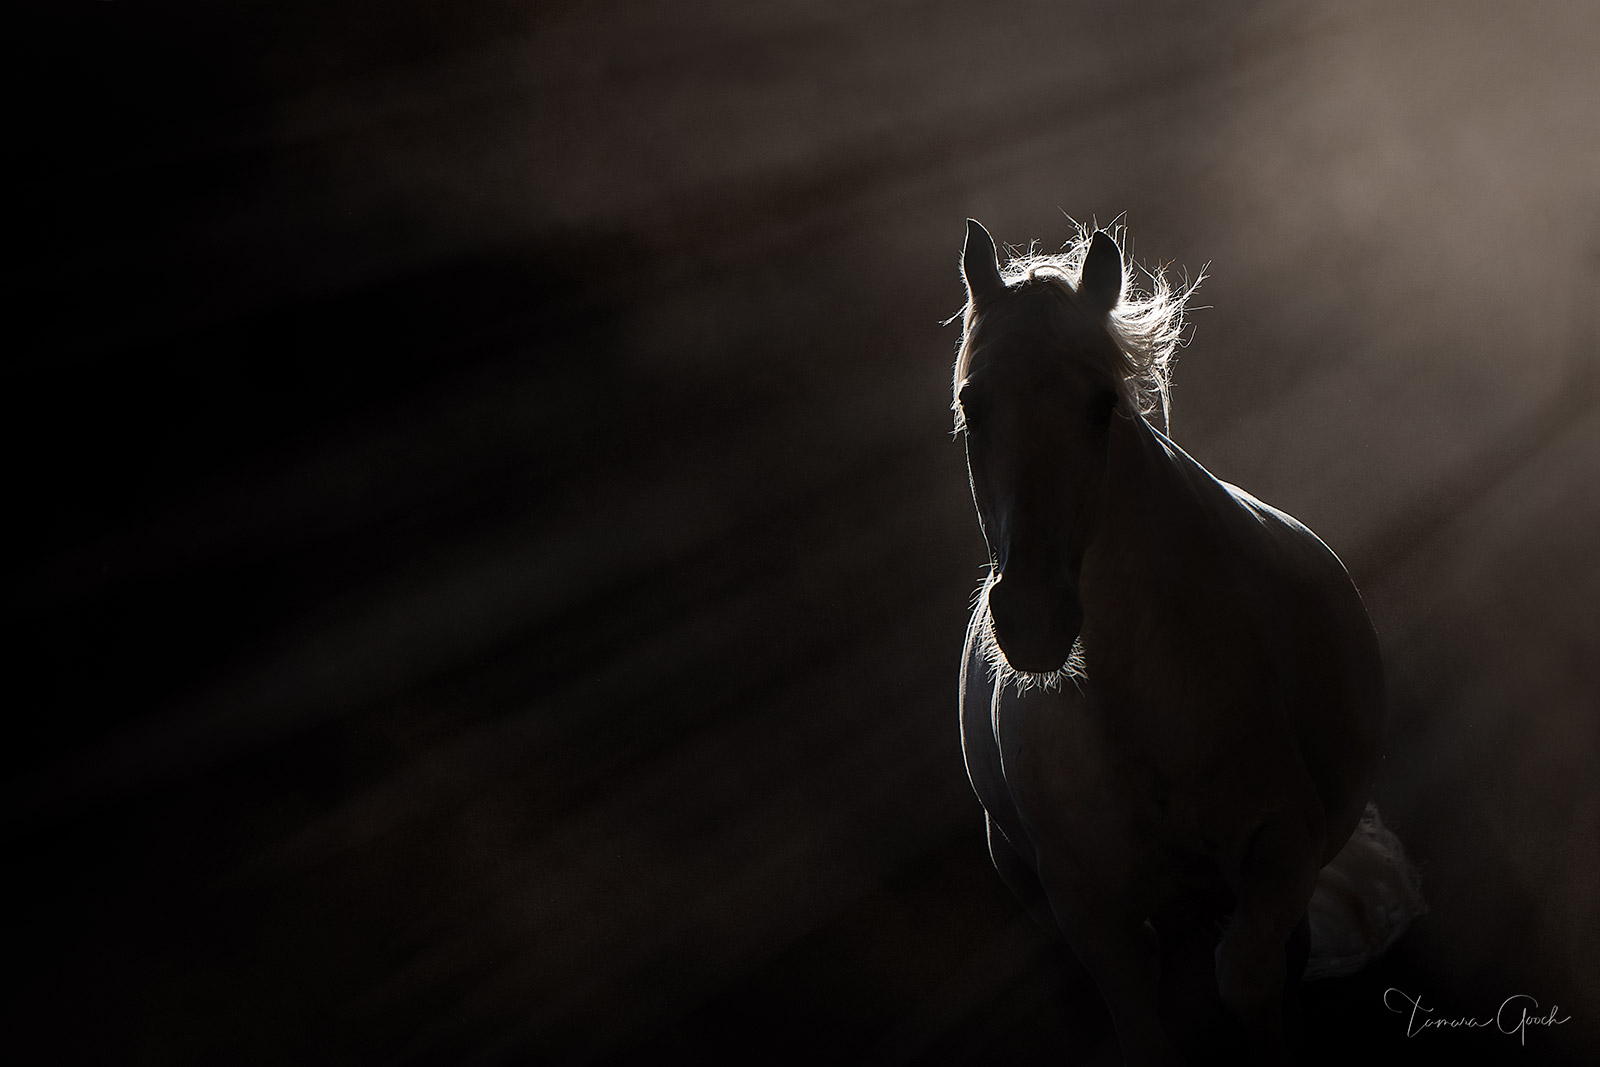 Black and white horse photo print. Luxury gallery quality ready to hang wall art, equestrian home decor, for sale